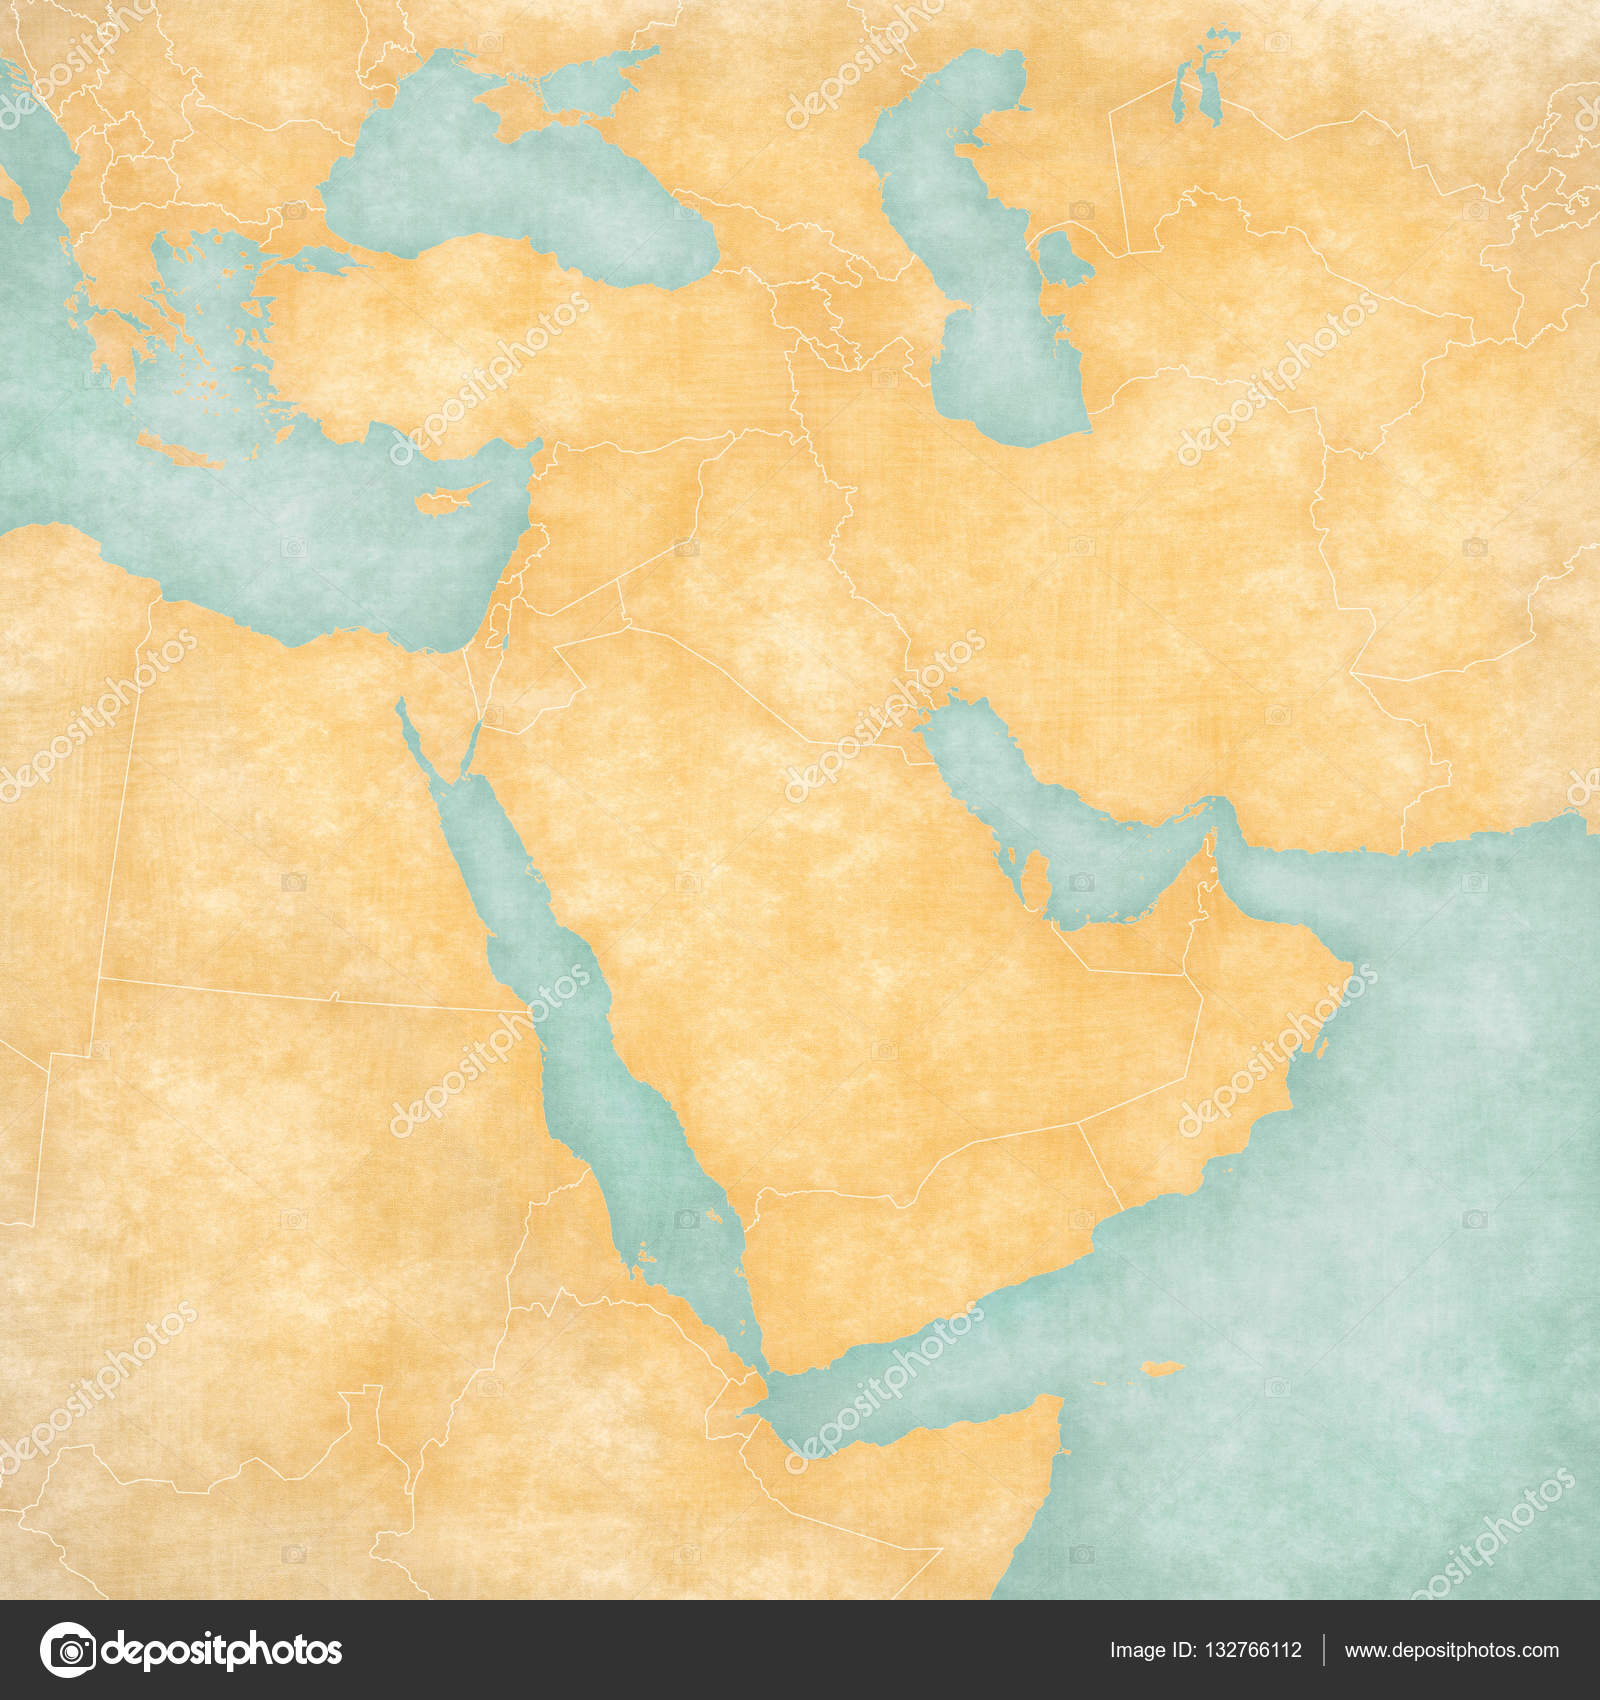 Blank map of middle east asia | Map of Middle East - Blank ...